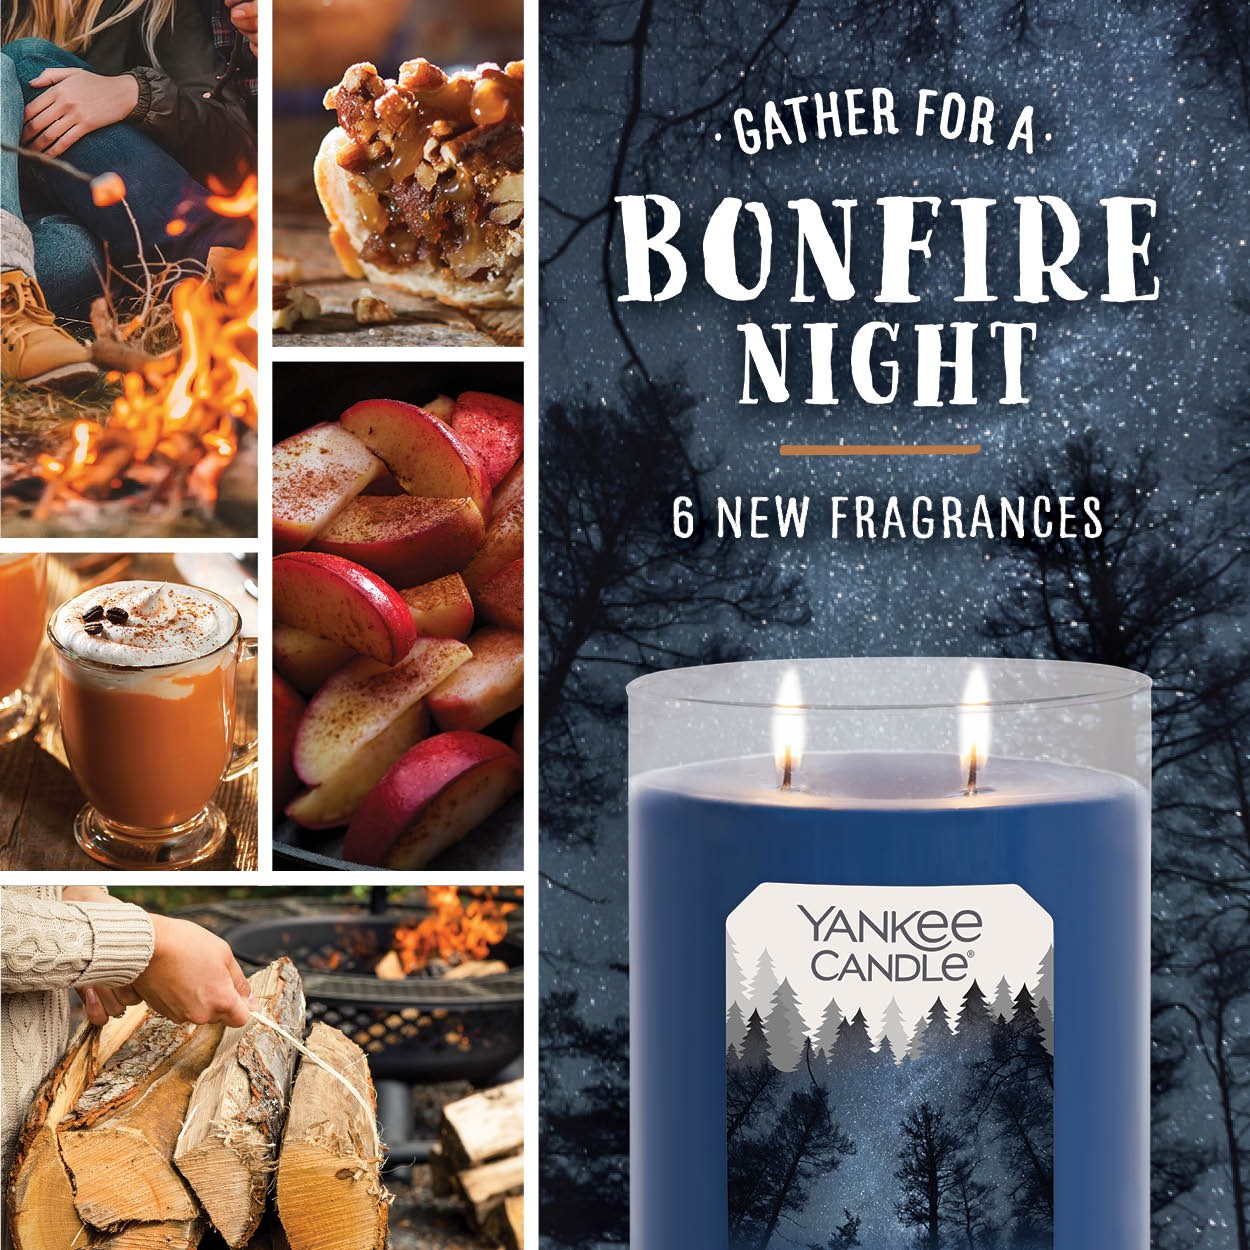 Bonfire Nights Collection from Yankee Candle